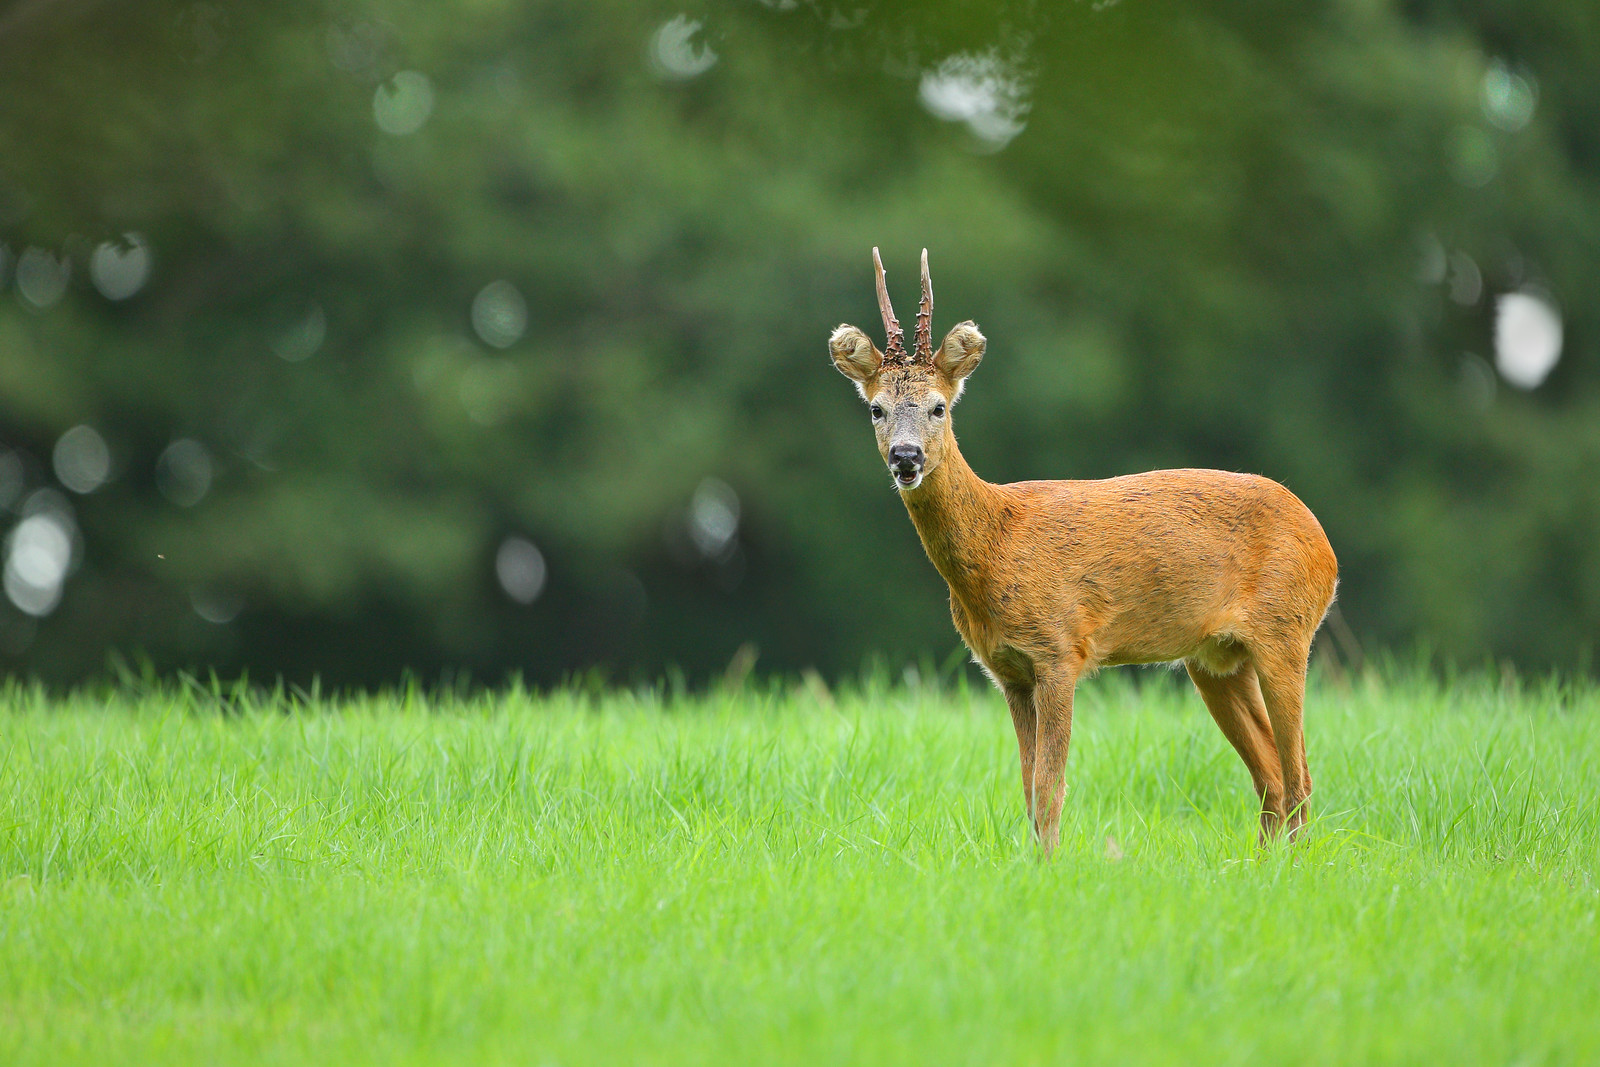 The Yawning Roe Deer